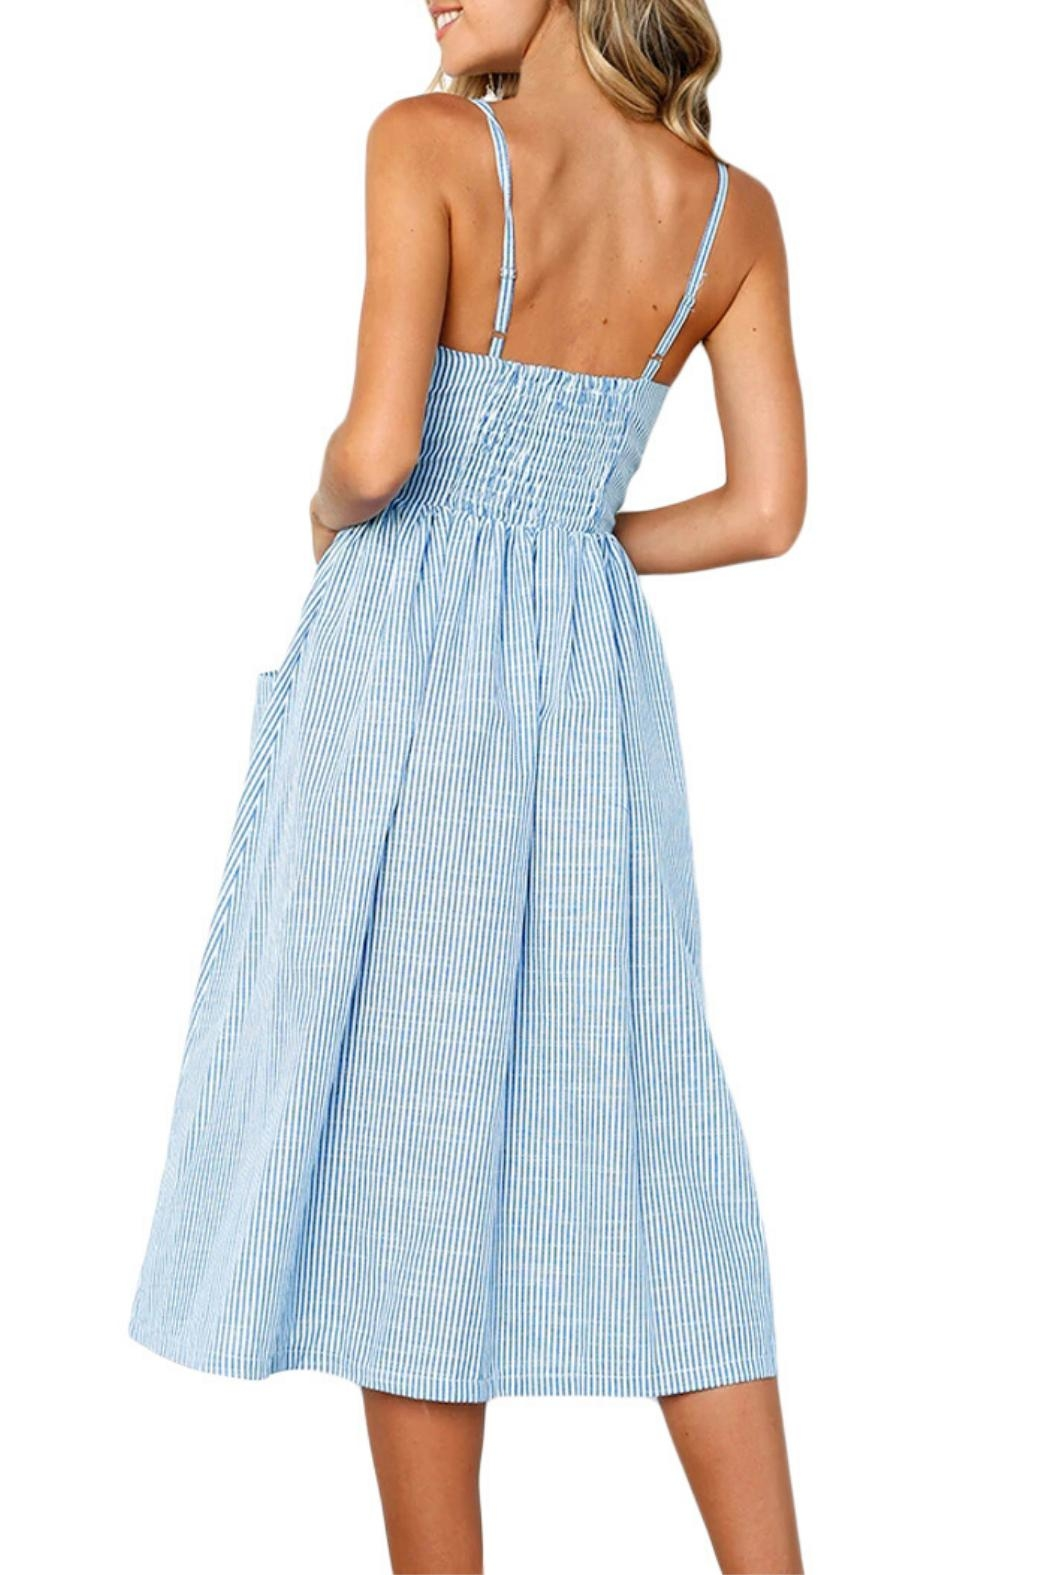 Unbranded Button Down Dress - Side Cropped Image